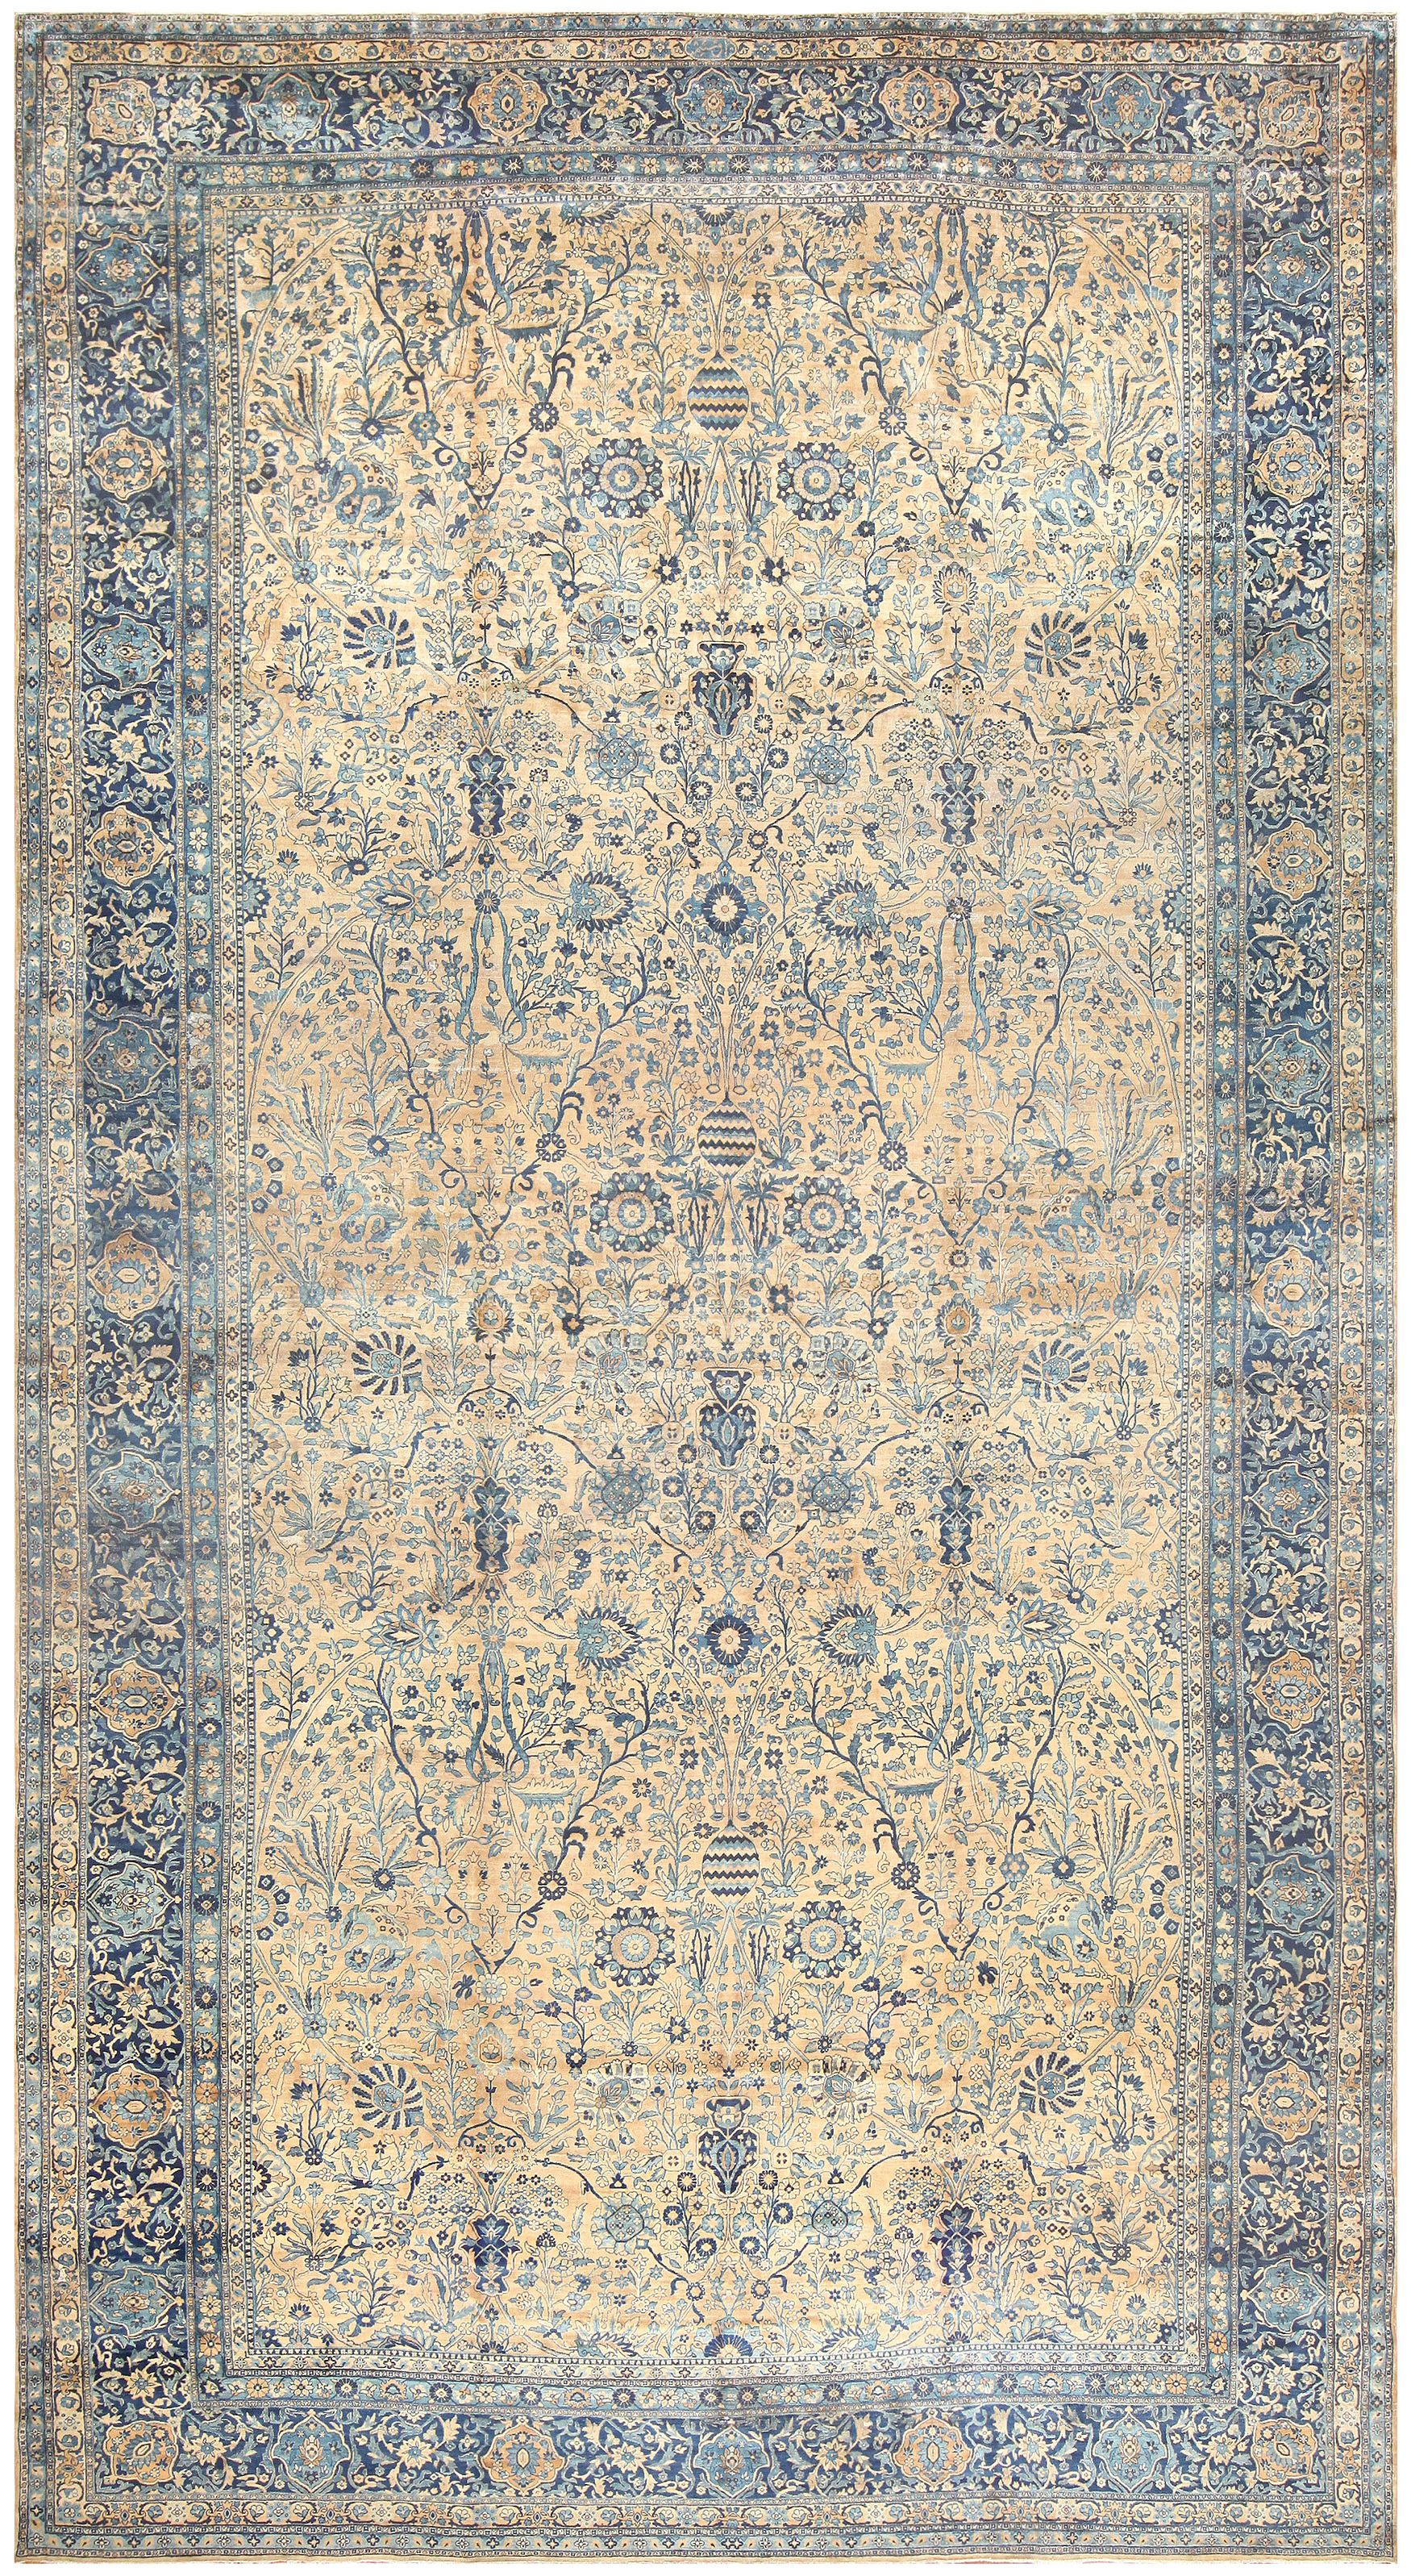 Antique Oversized Persian Kerman Carpet 50113 In 2019